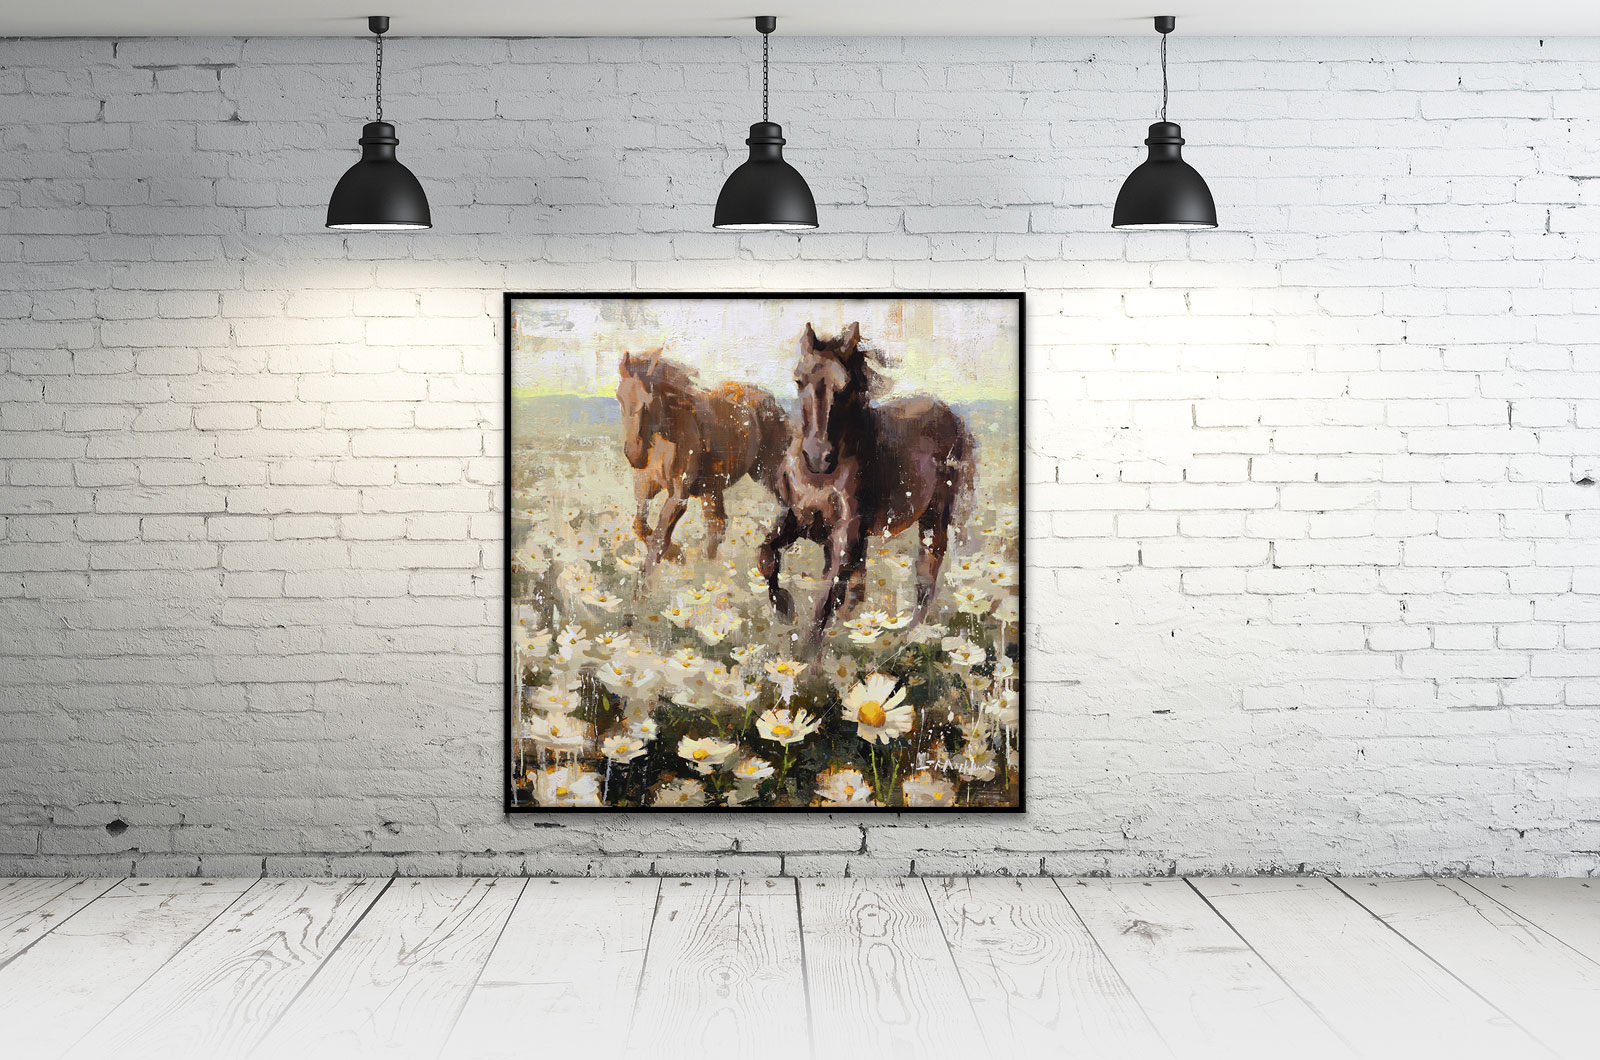 Fine art contemporary realism oil paintings by artist Jerry R. Markham - floral paintings, landscape paintings, wildlife paintings, figure paintings, western paintings, western art